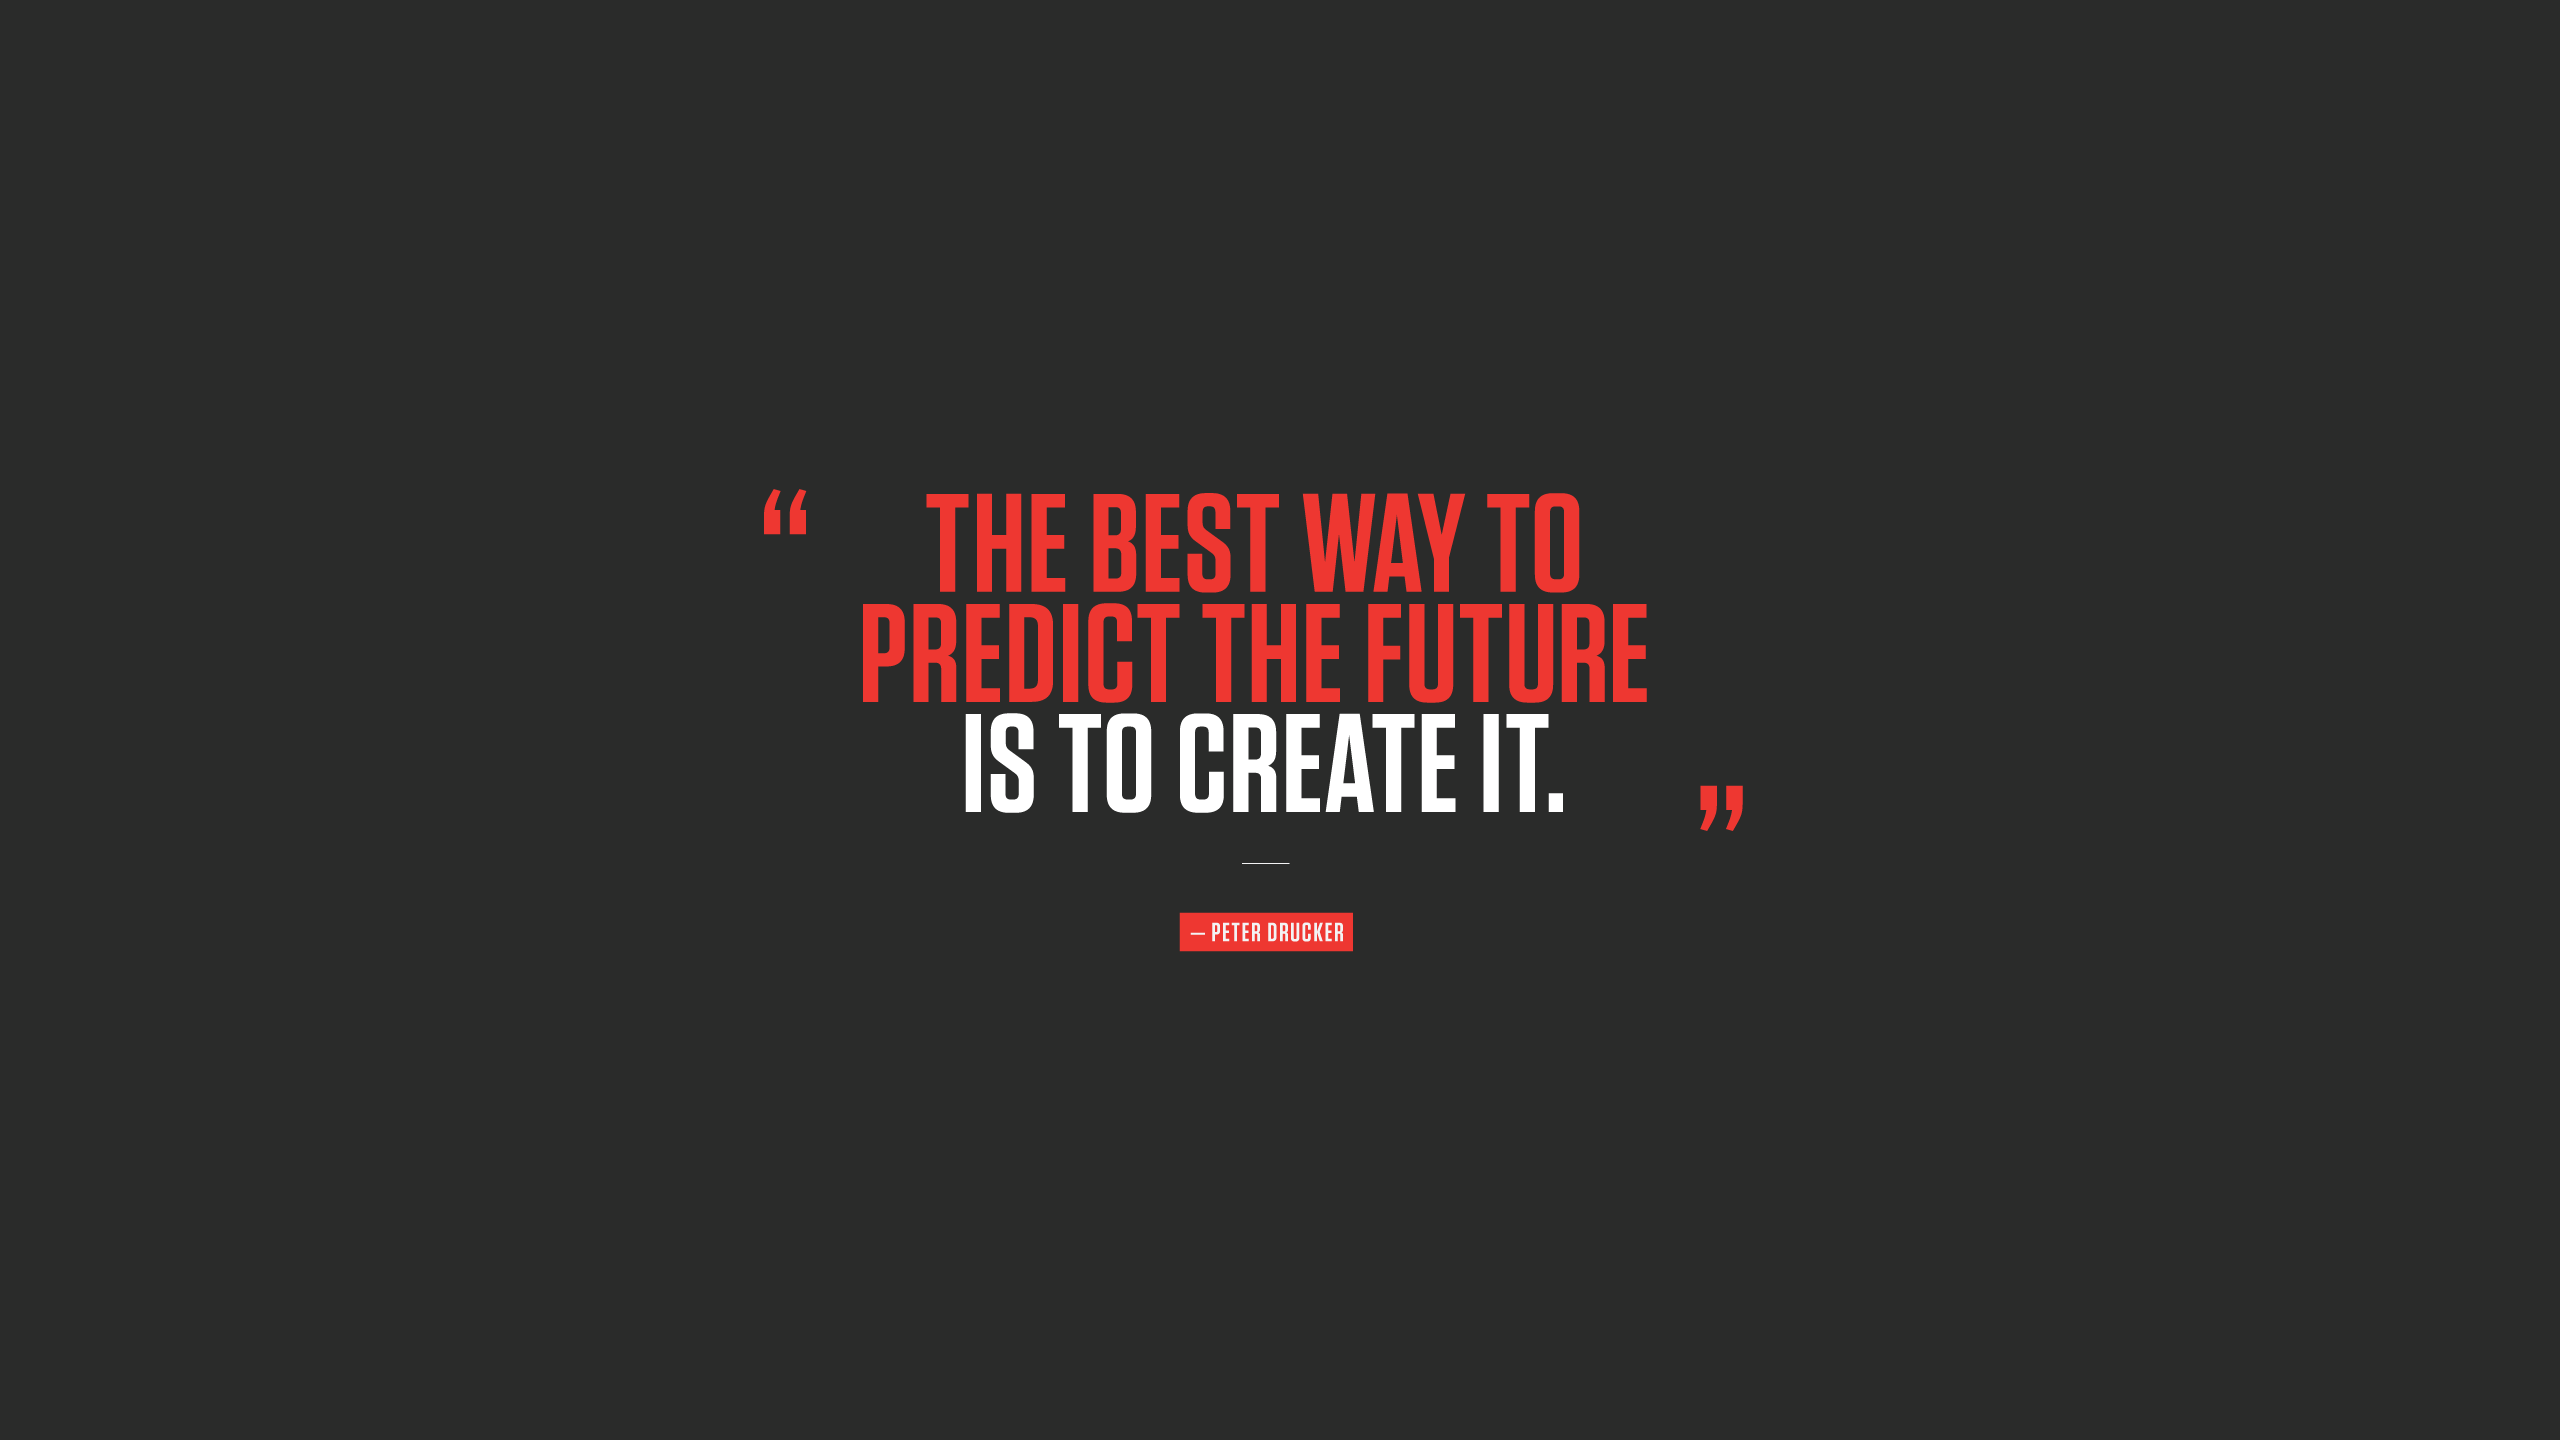 The best way to predict the future  to create it wallpapers and images  wallpapers pictures